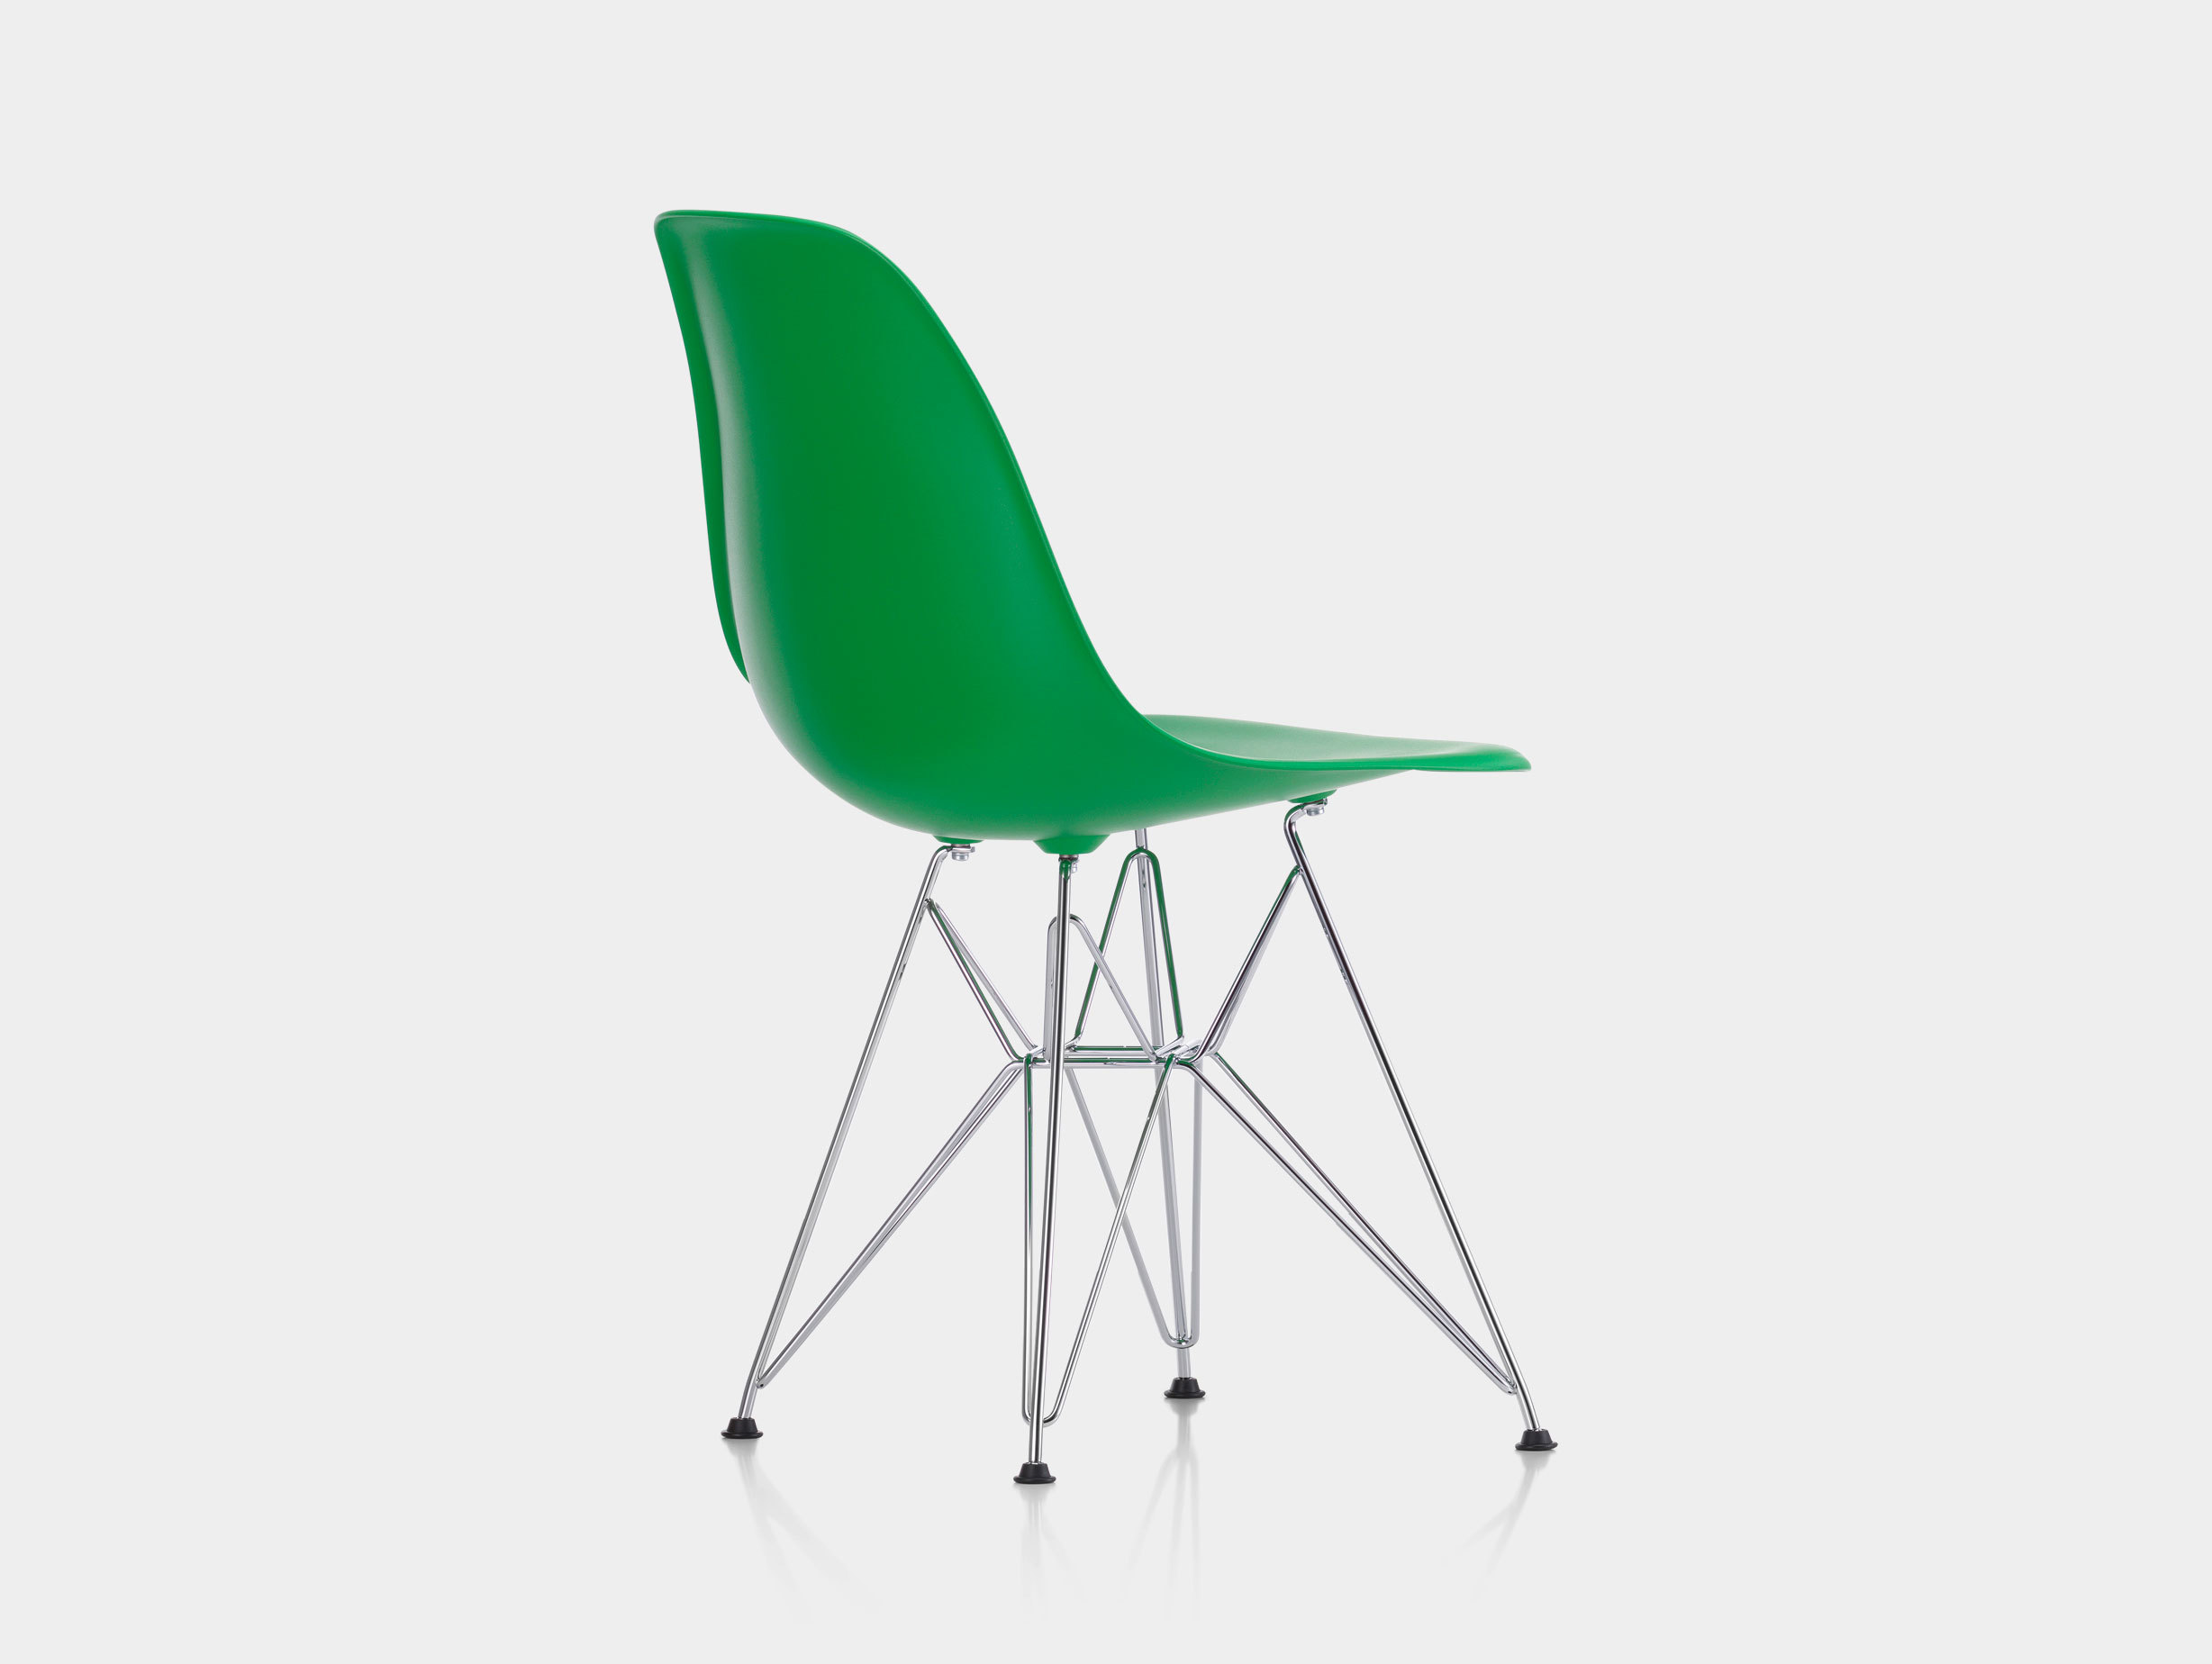 Eames DSR Plastic Side Chair image 7